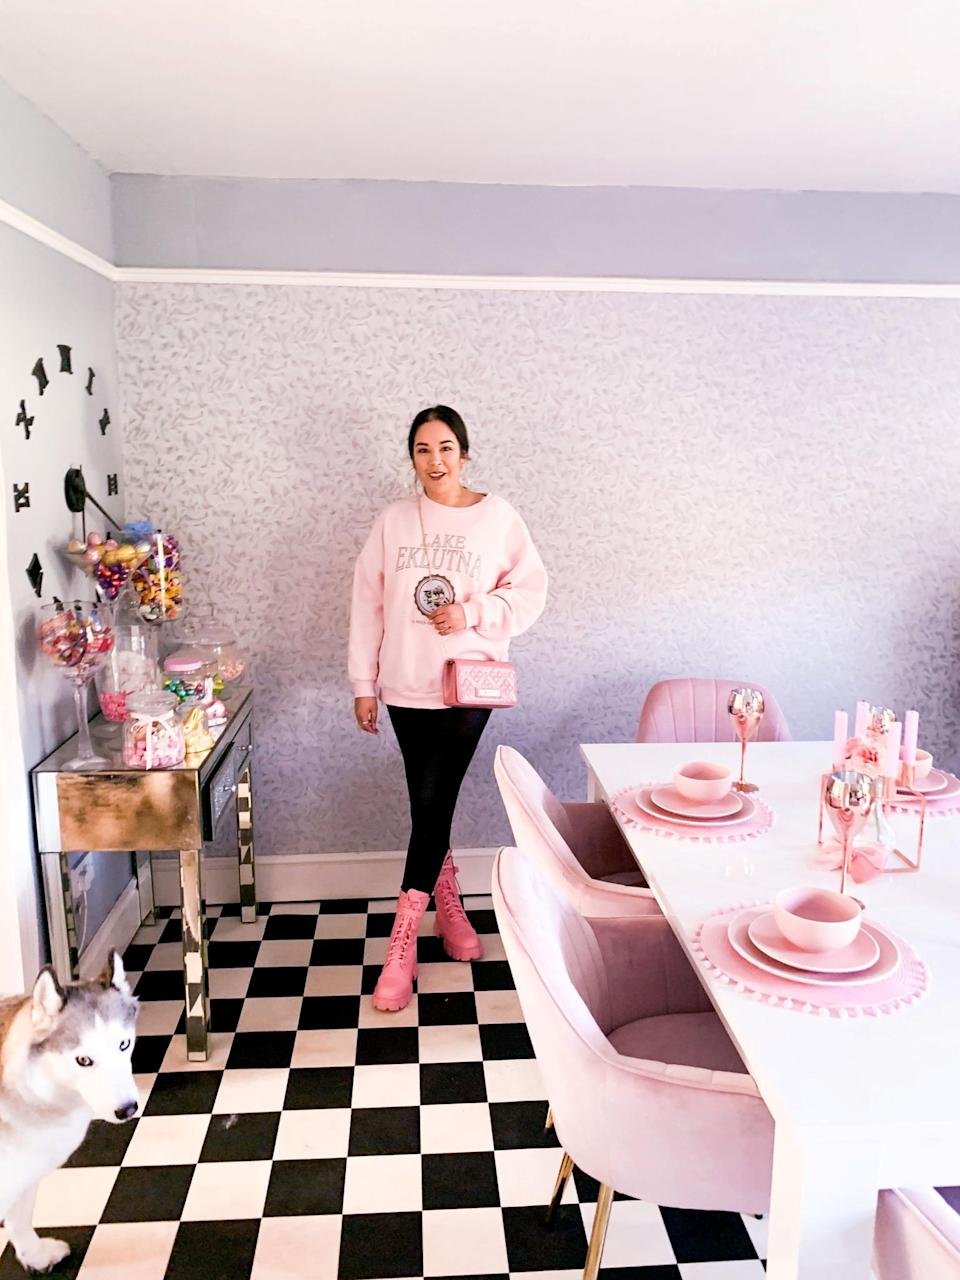 The pink-obsessed woman began her colour coordinated journey when her Stepdad, Michael Heslop, 64, gifted her a pink kettle and toaster at her engagement party in May 2019.